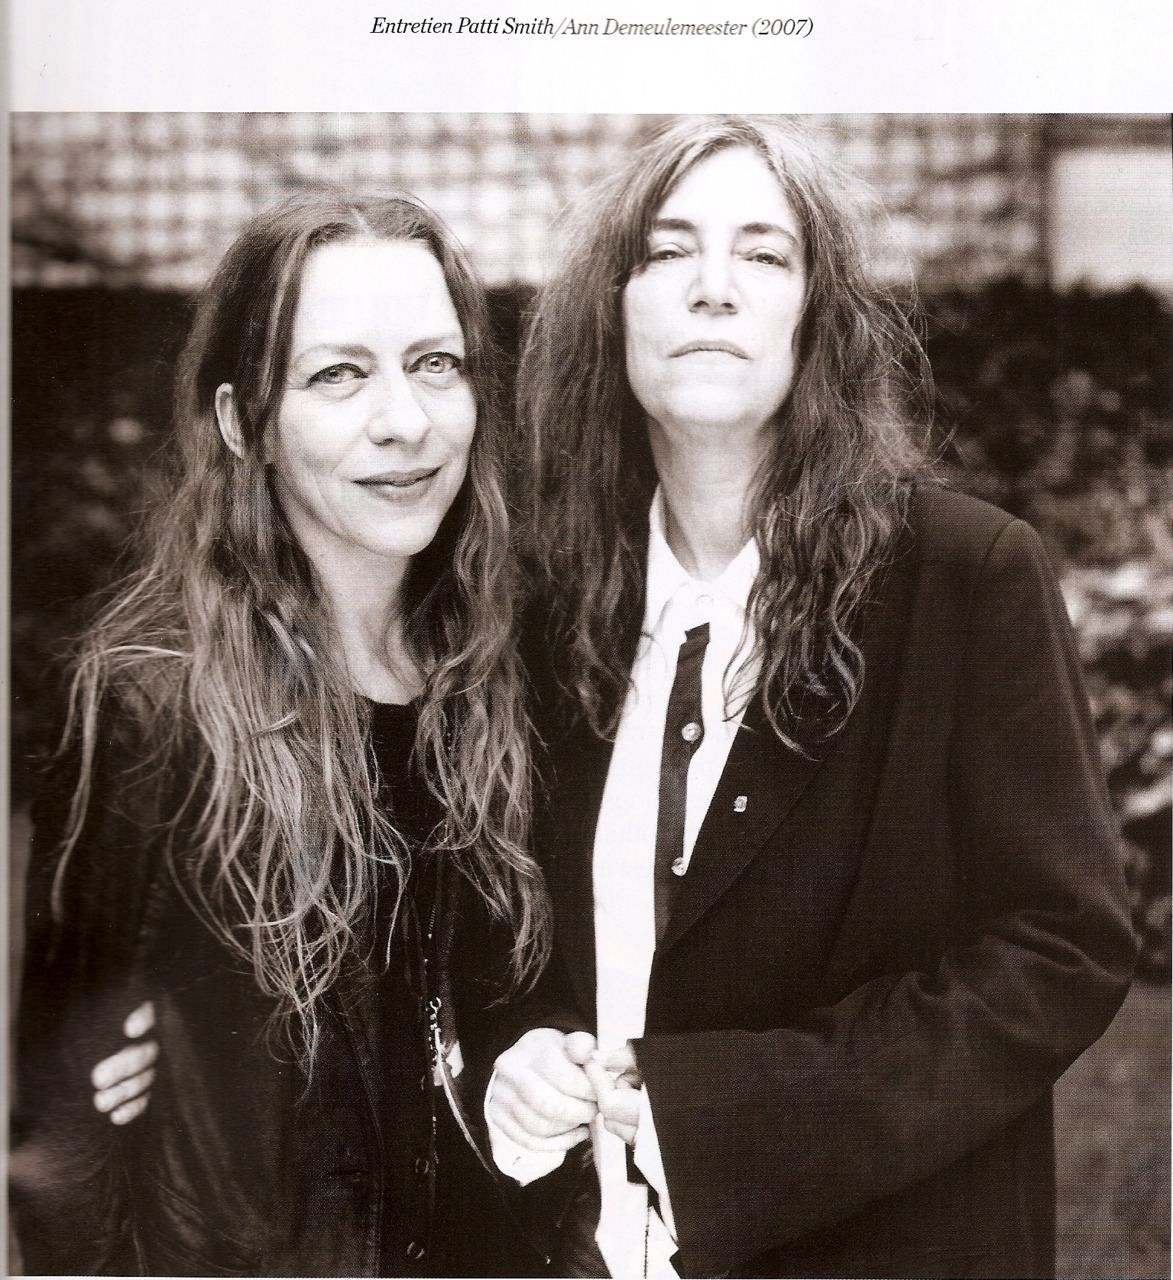 Ann Deleumeester & Patti Smith 2007 scanned by: sogoddamnyoung